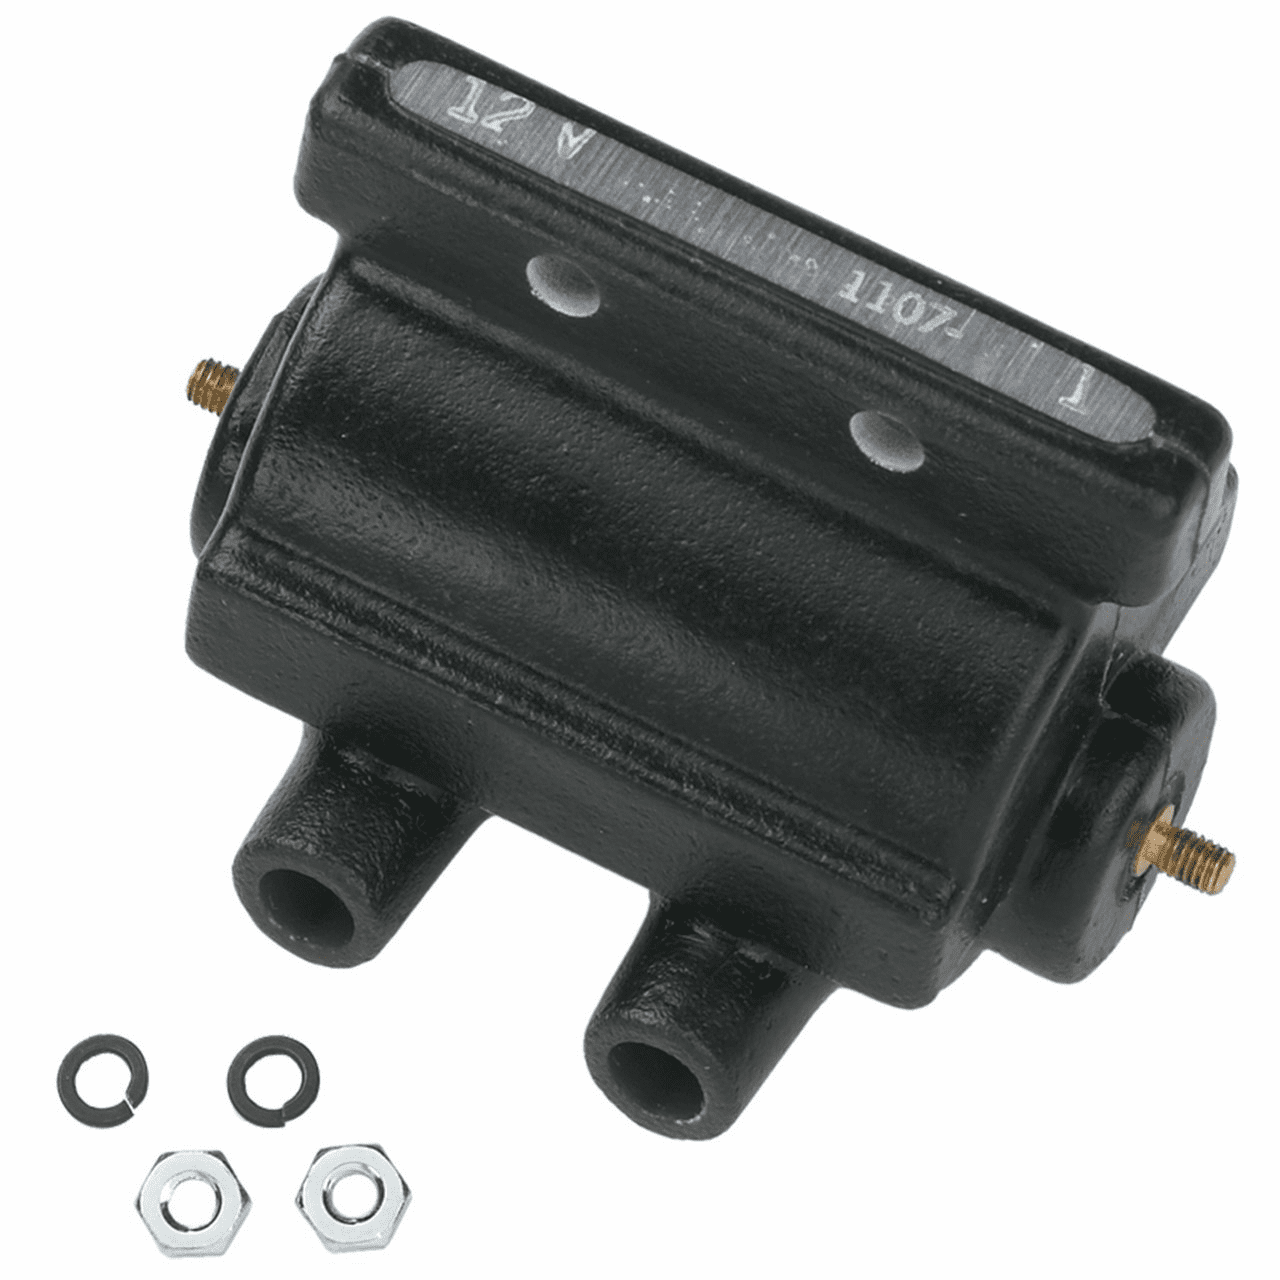 New Kohler OEM Ignition Coil 277375 277375-s